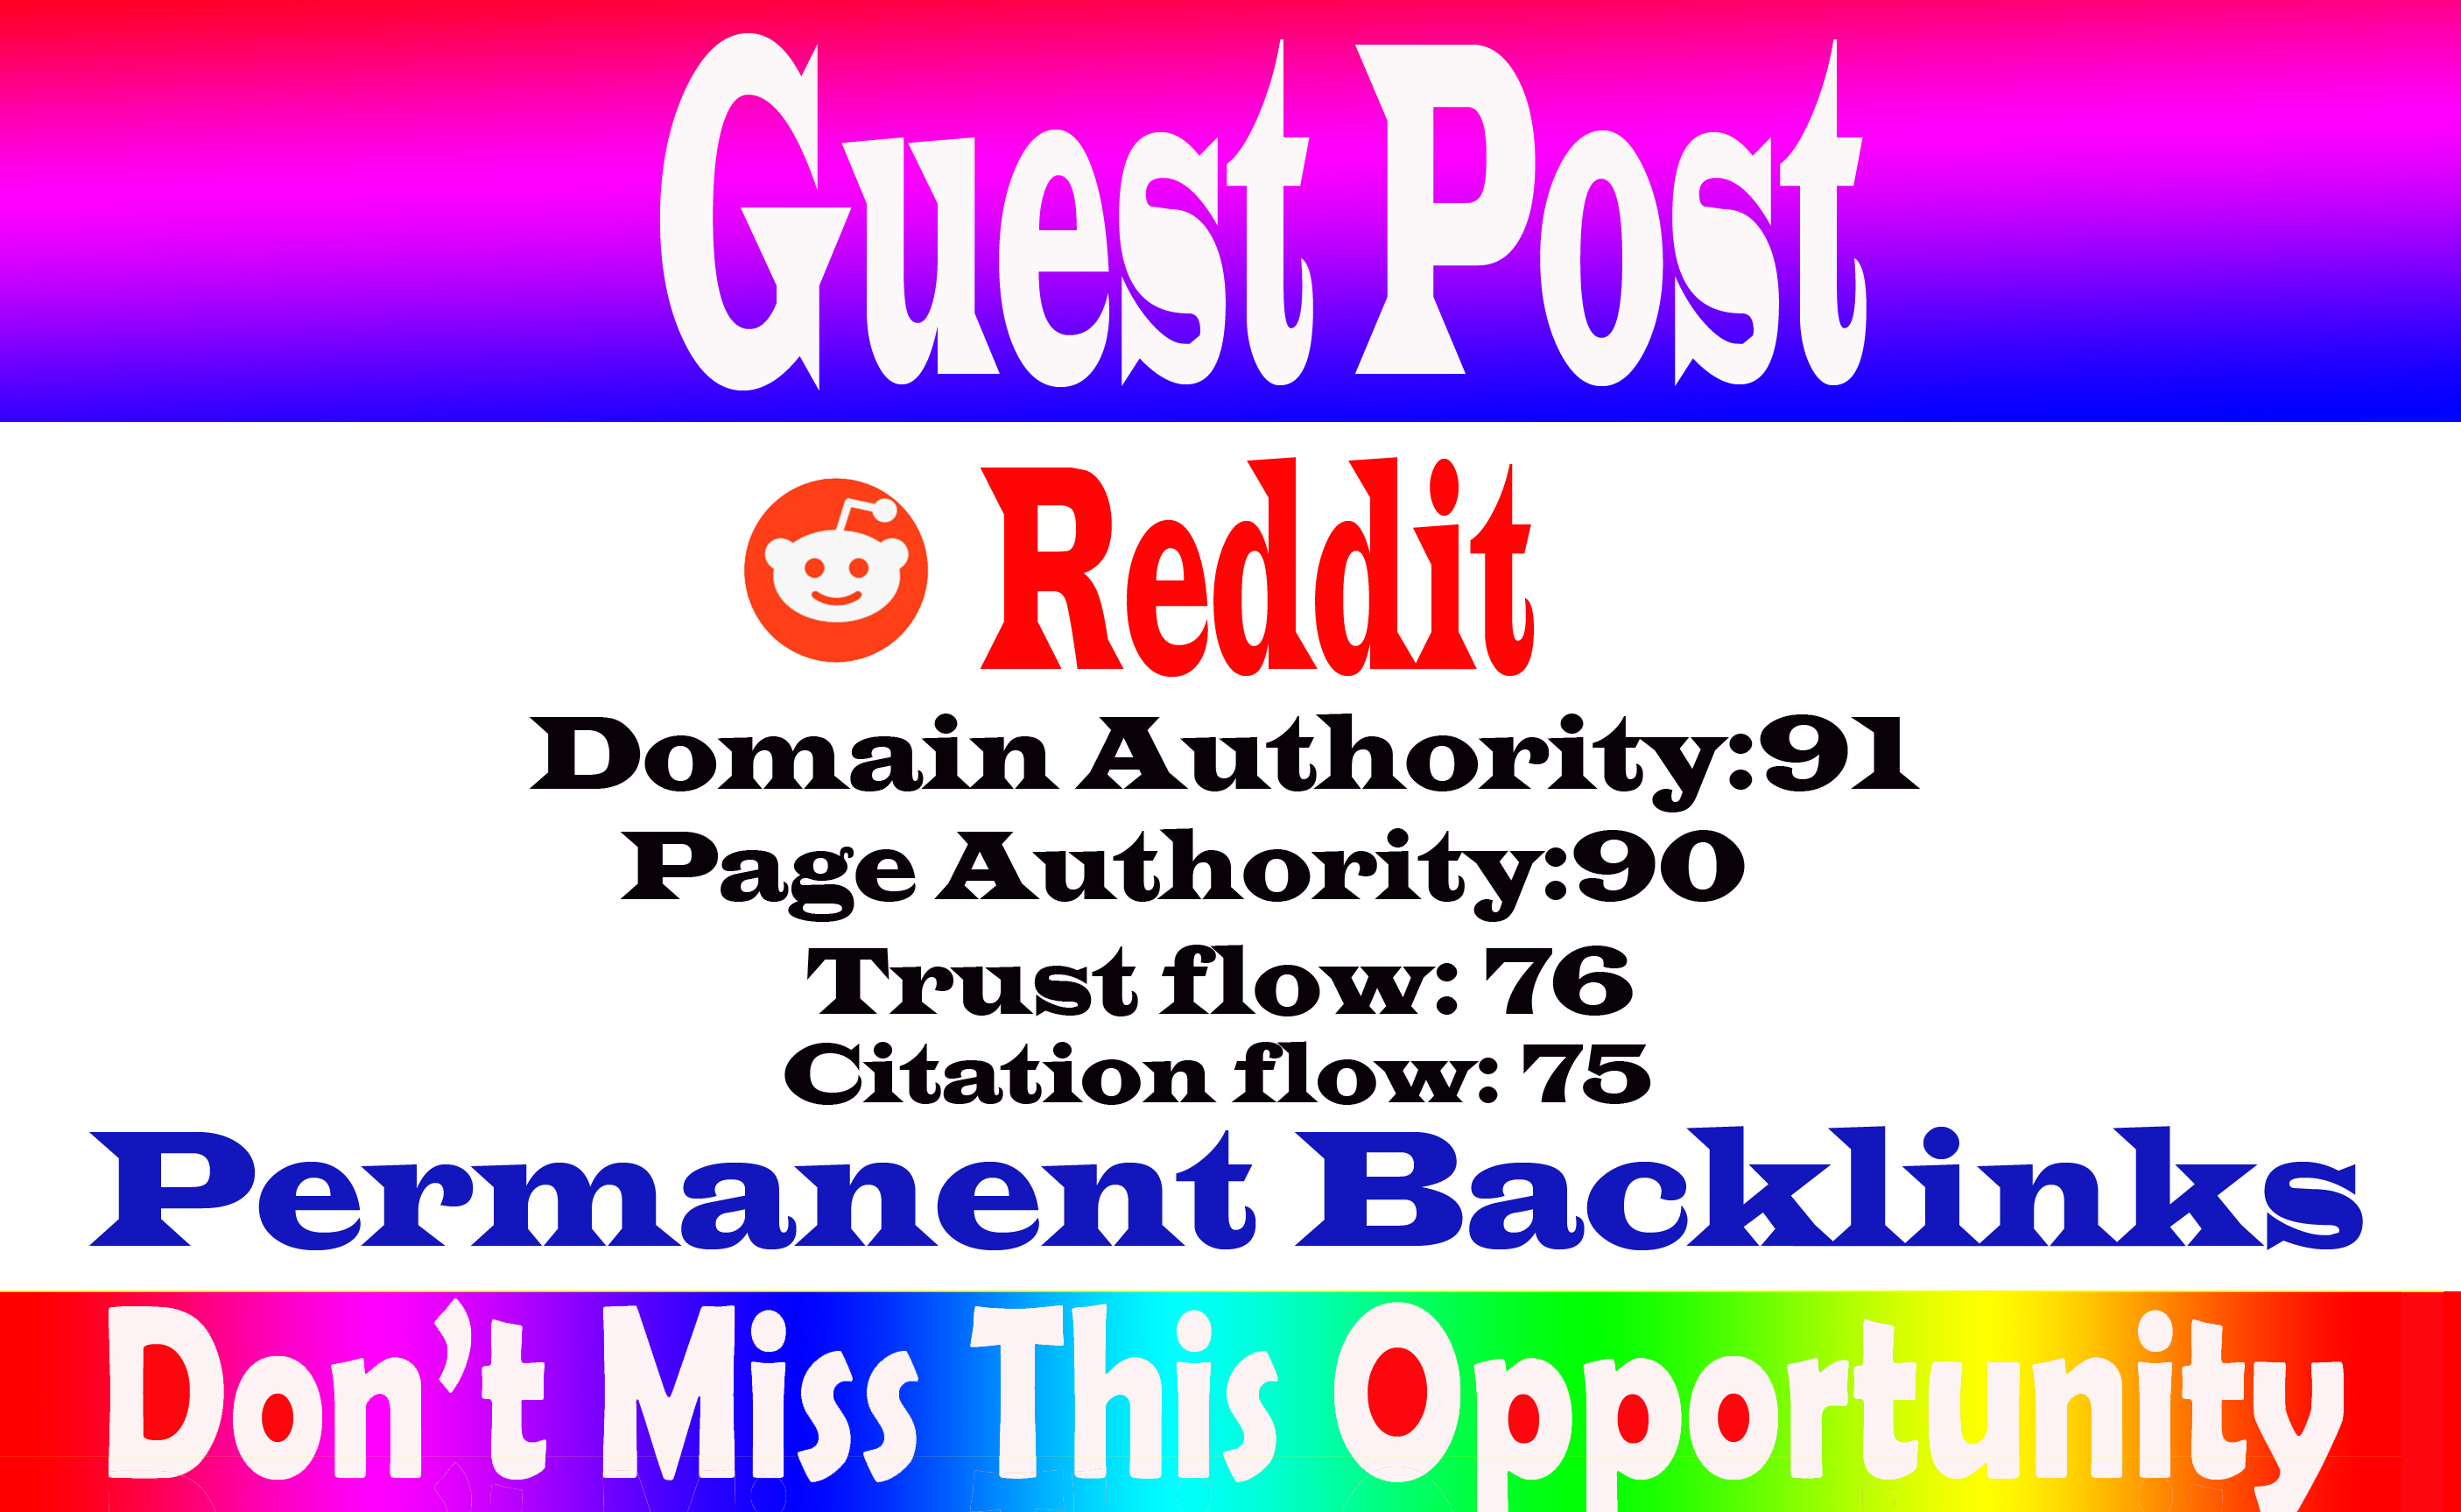 write and publish a guest post Reddit,  Reddit. com DA 91 With permanent strong backlink